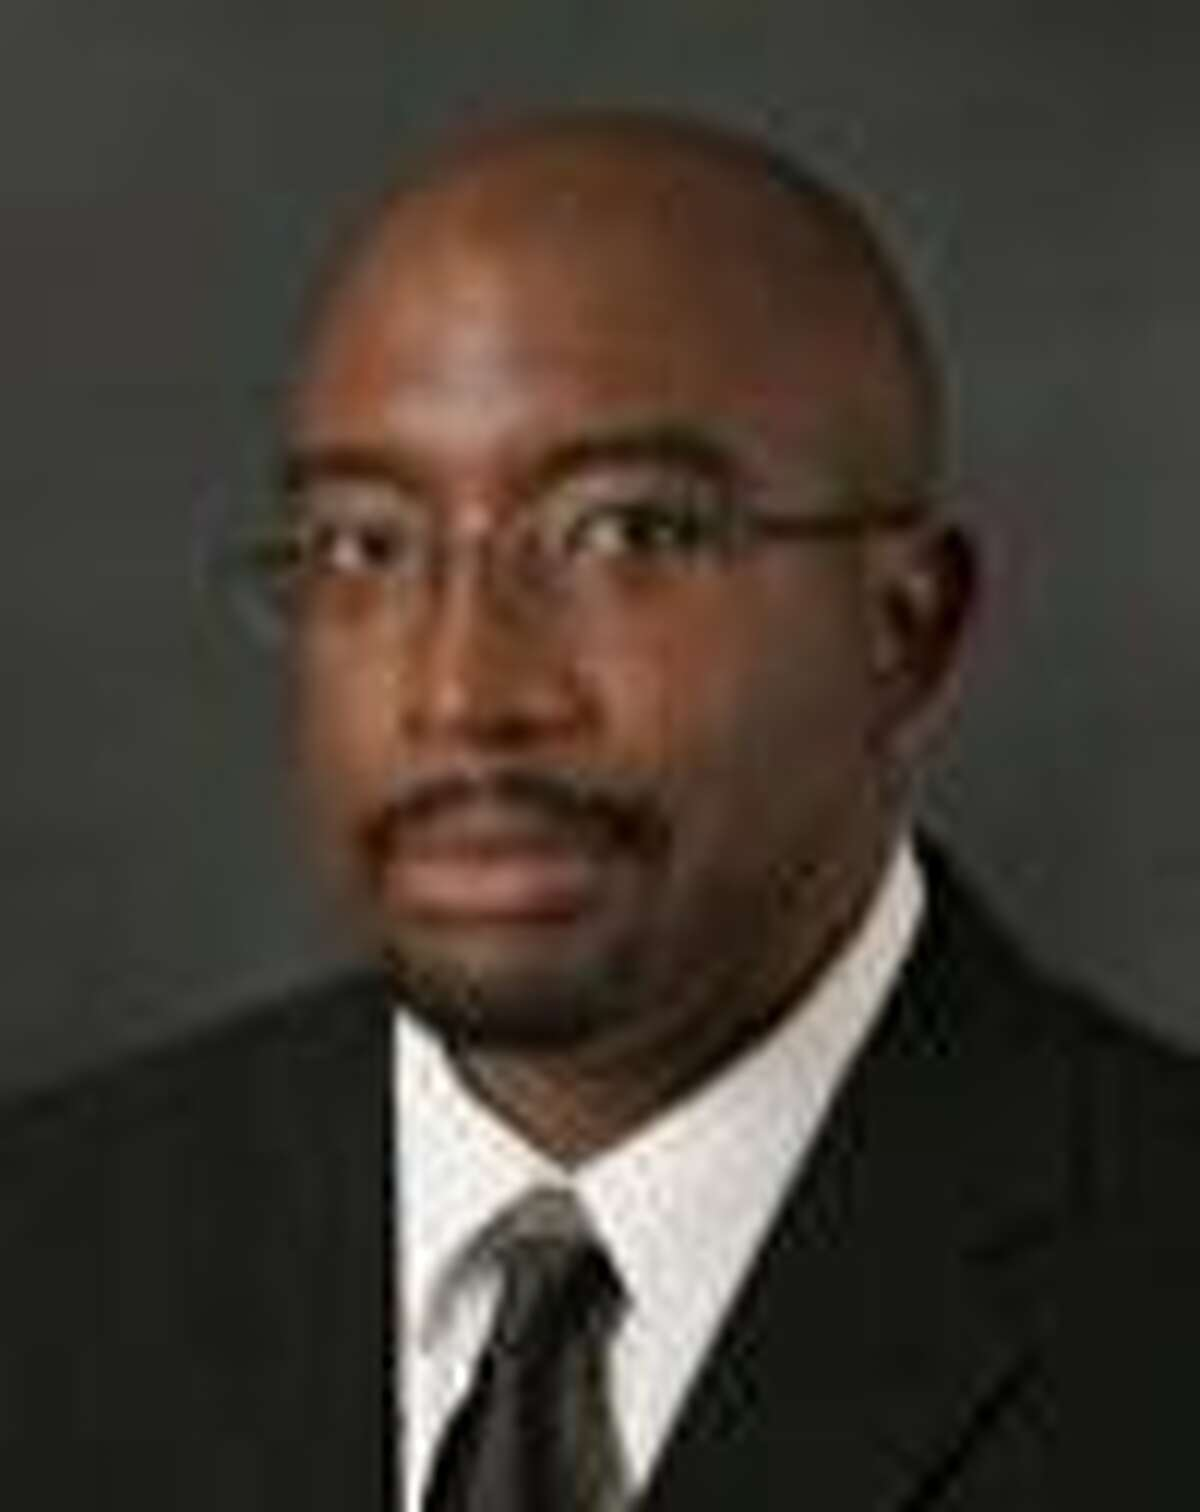 Vincent Matthews is the interim adminstrator for Oakland schools and he is the responsible for at least one current item that I'm planning for the Oct. 22 watchlist. HANDOUT